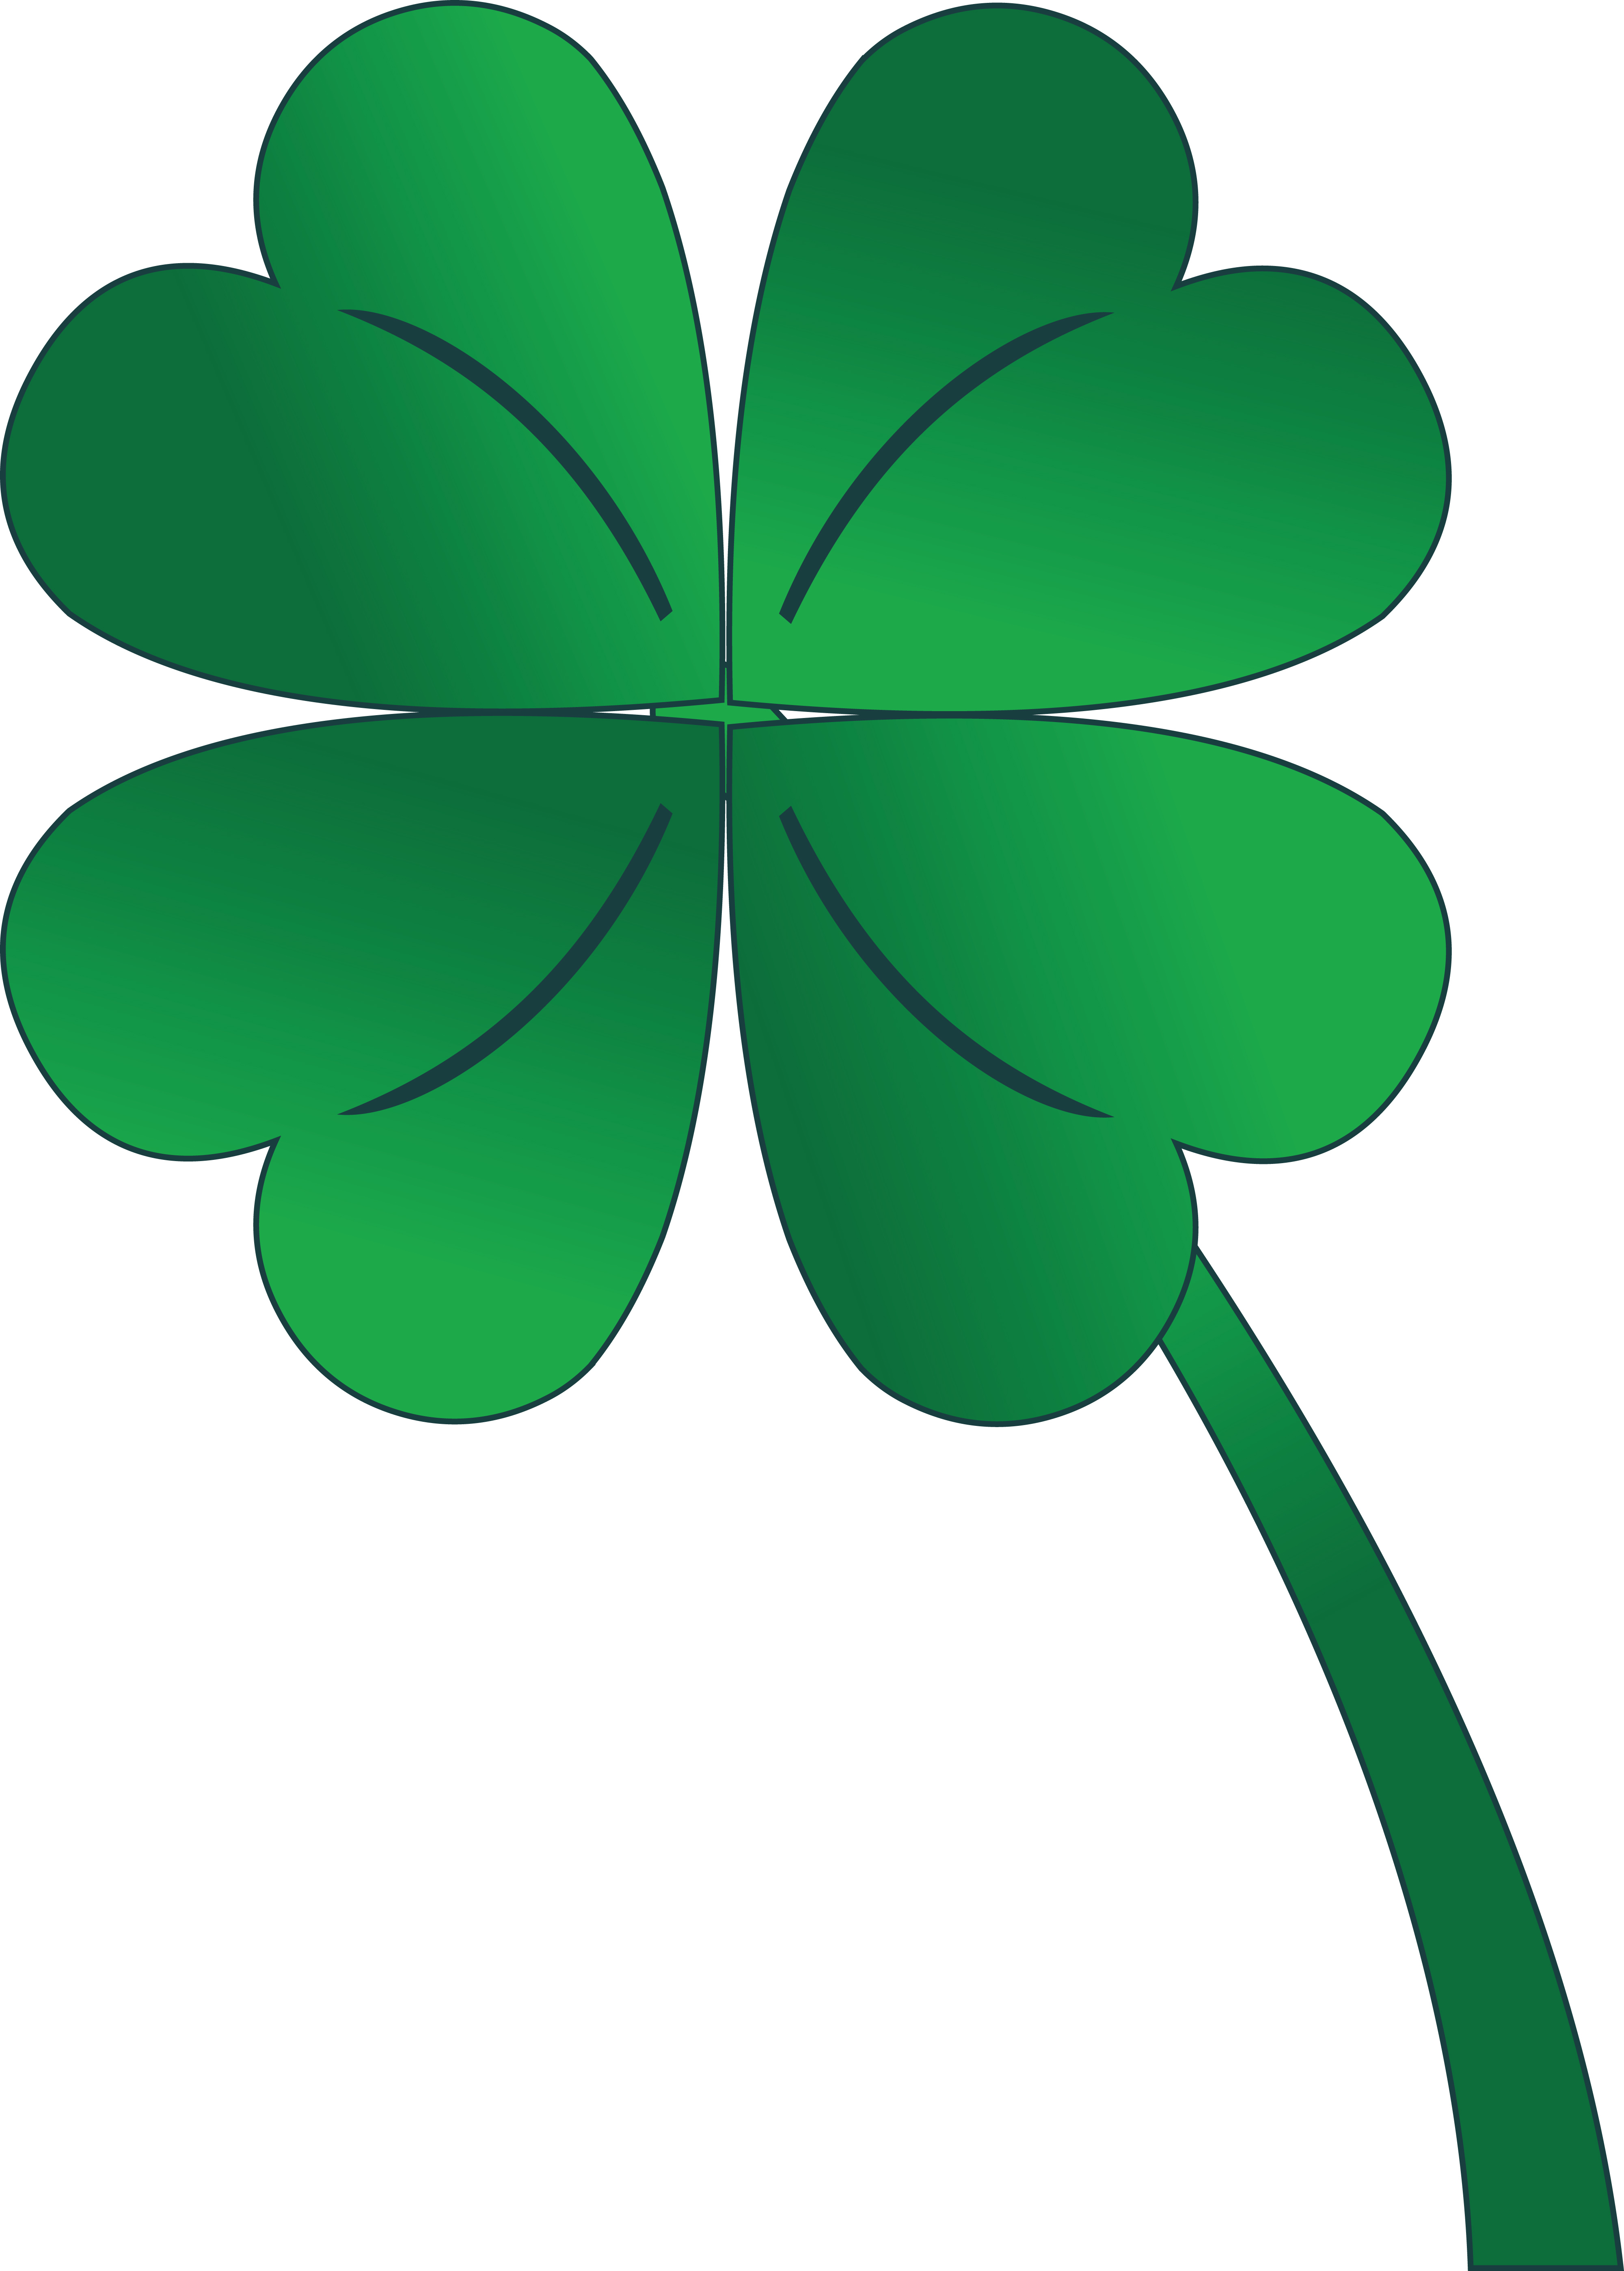 Clipart Of A St Paddy's Day 4 Leaf Clover Shamrock